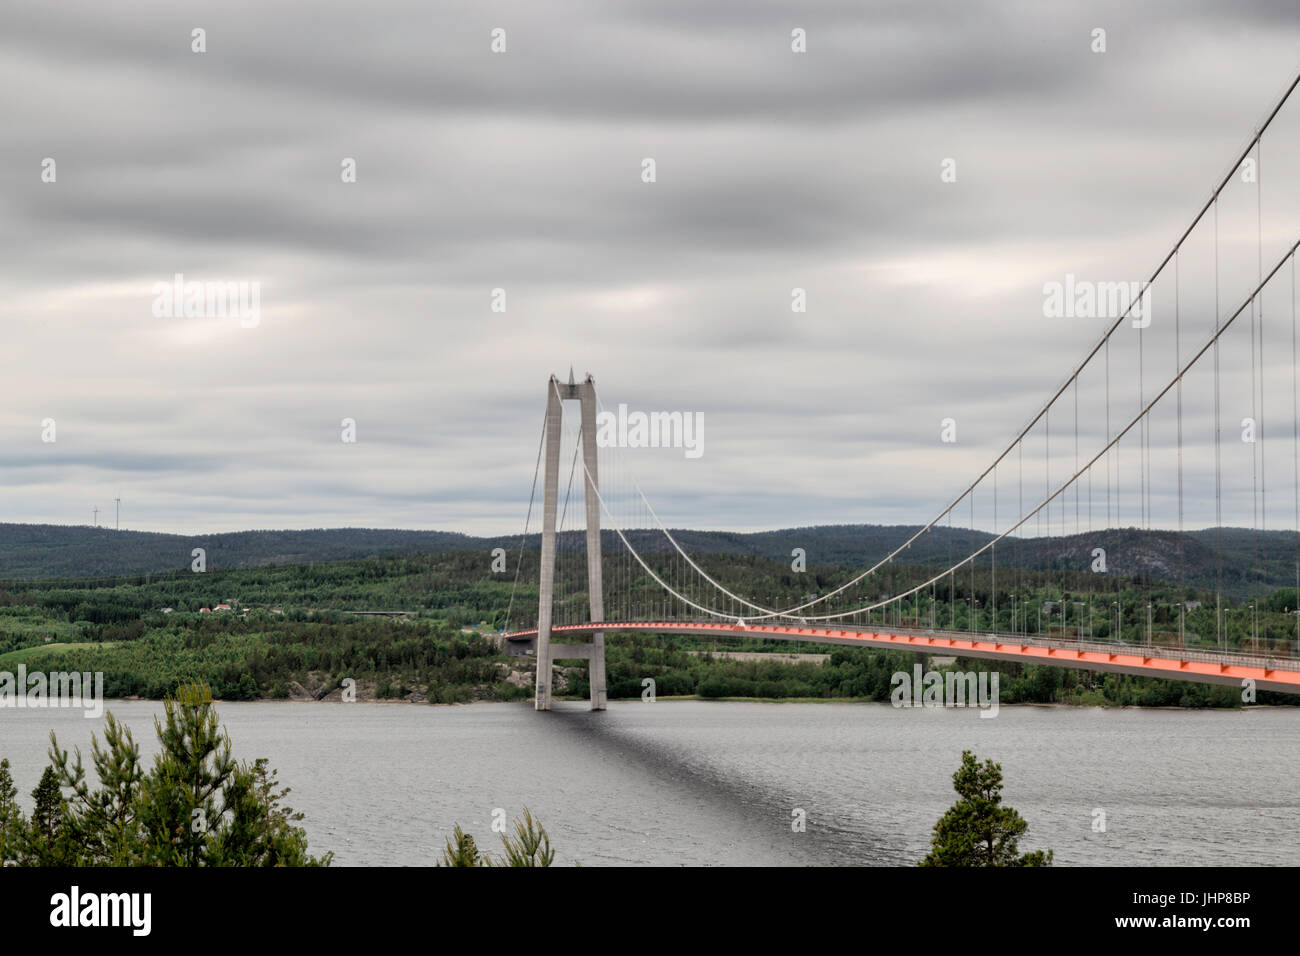 The High Coast Bride in Sweden with a cloudy sky. - Stock Image